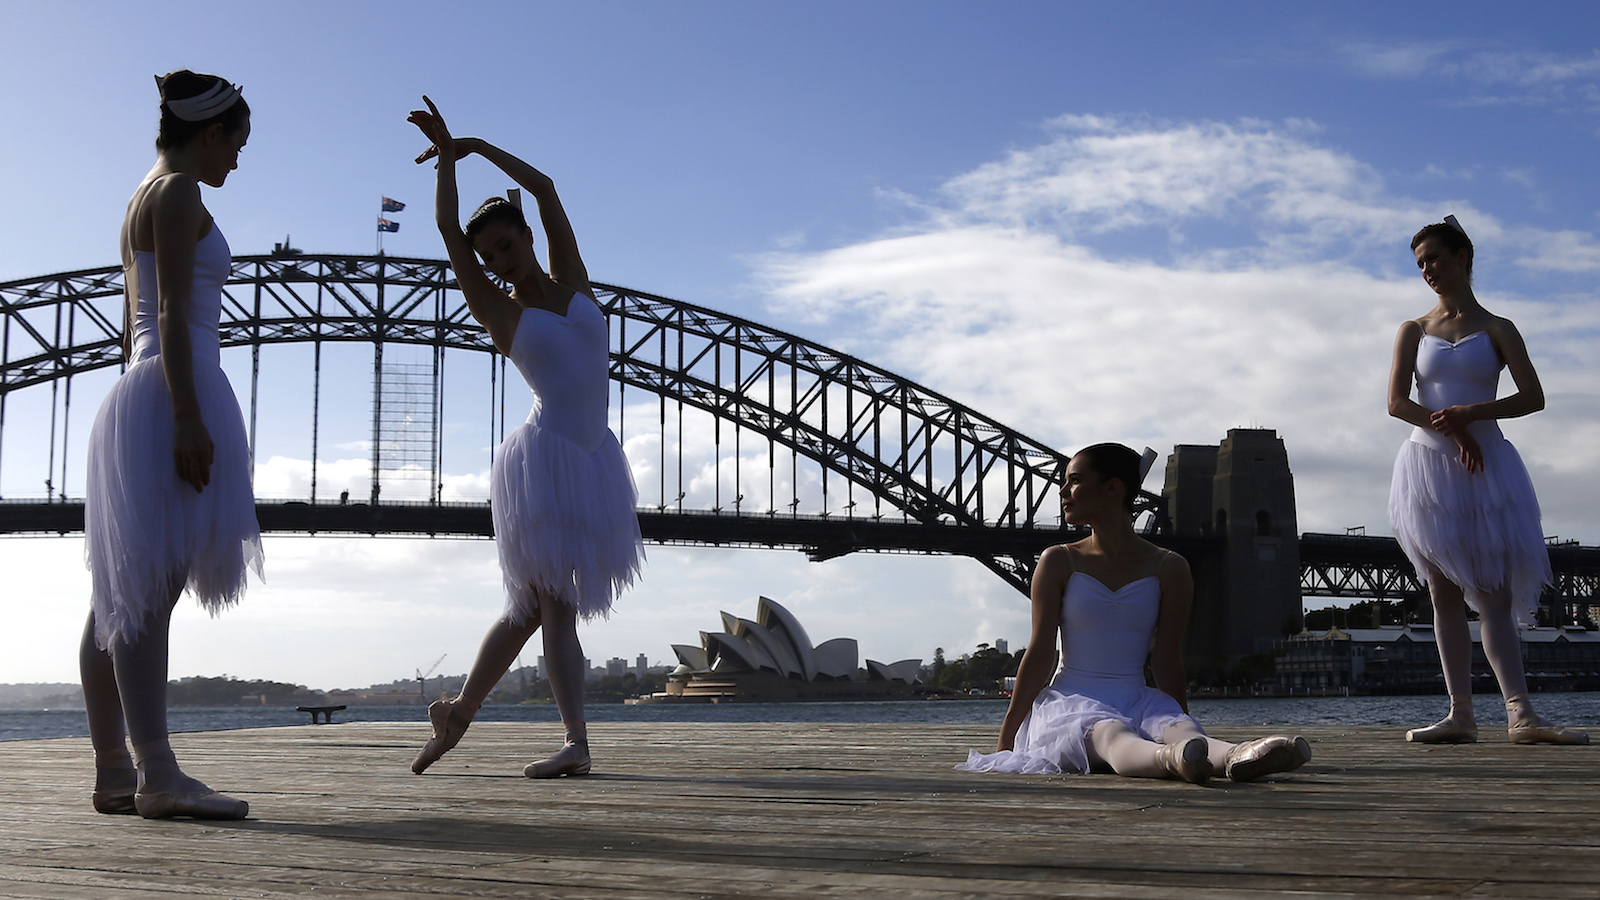 Ballerinas from The Australian Ballet perform on a floating platform, during a promotional event in front of the Sydney Opera House and Harbour Bridge, February 18, 2015. The event was to promote the Australian Ballet's upcoming performance of Swan Lake opening on February 20.   REUTERS/David Gray     (AUSTRALIA - Tags: ENTERTAINMENT SOCIETY TPX IMAGES OF THE DAY) - RTR4Q09B